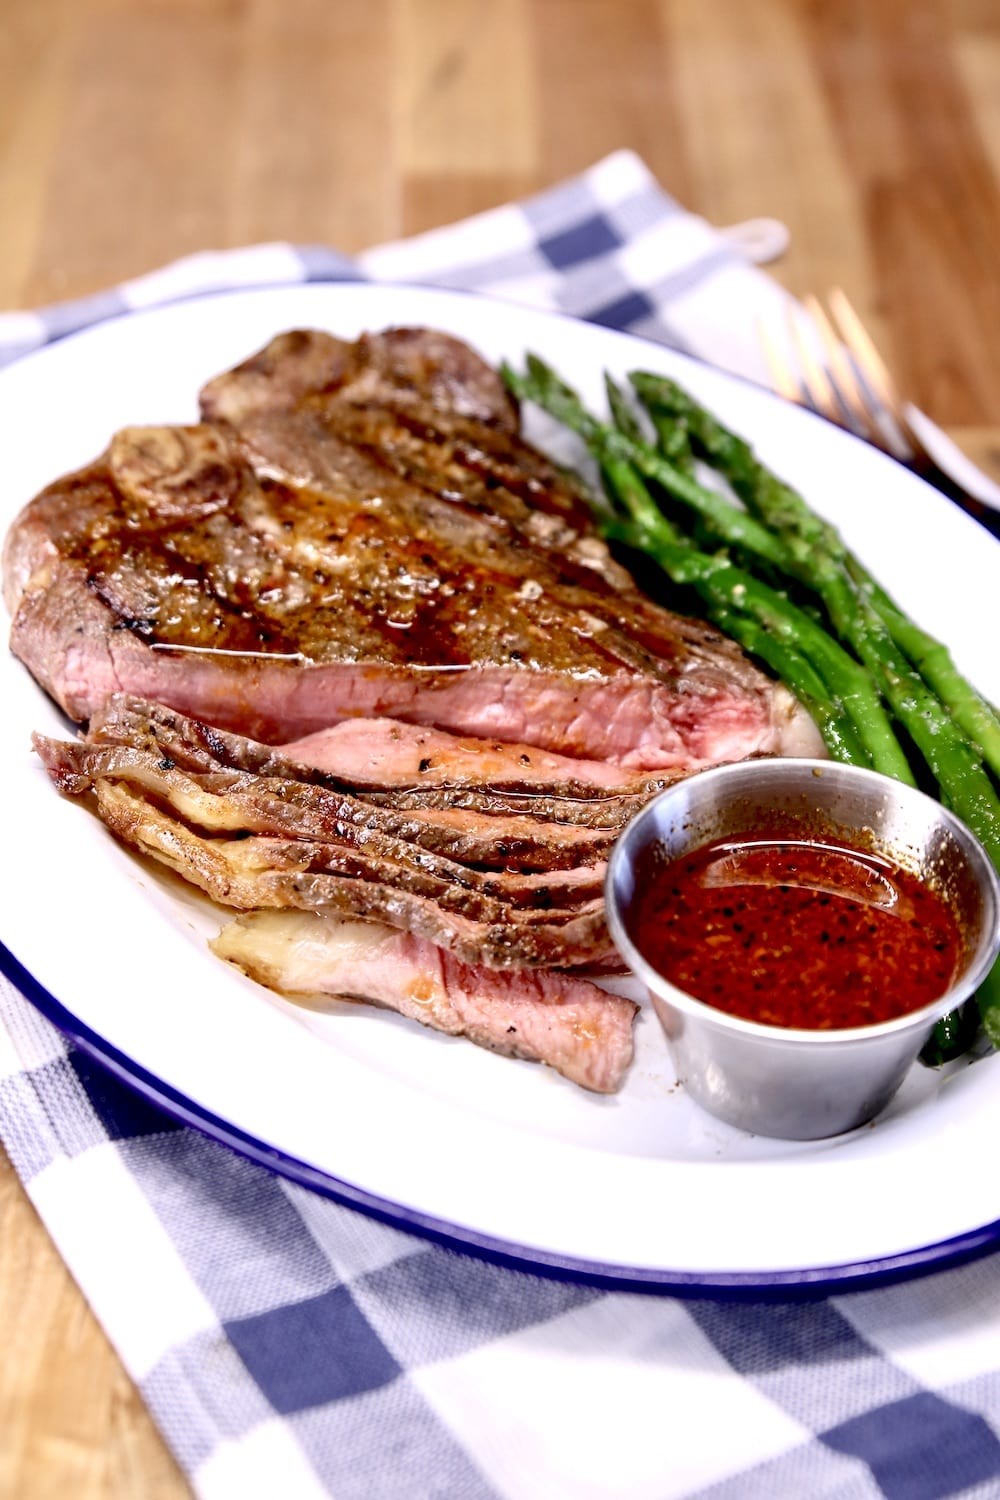 Grilled T Bone Steak partially sliced with cup of steak sauce and asparagus